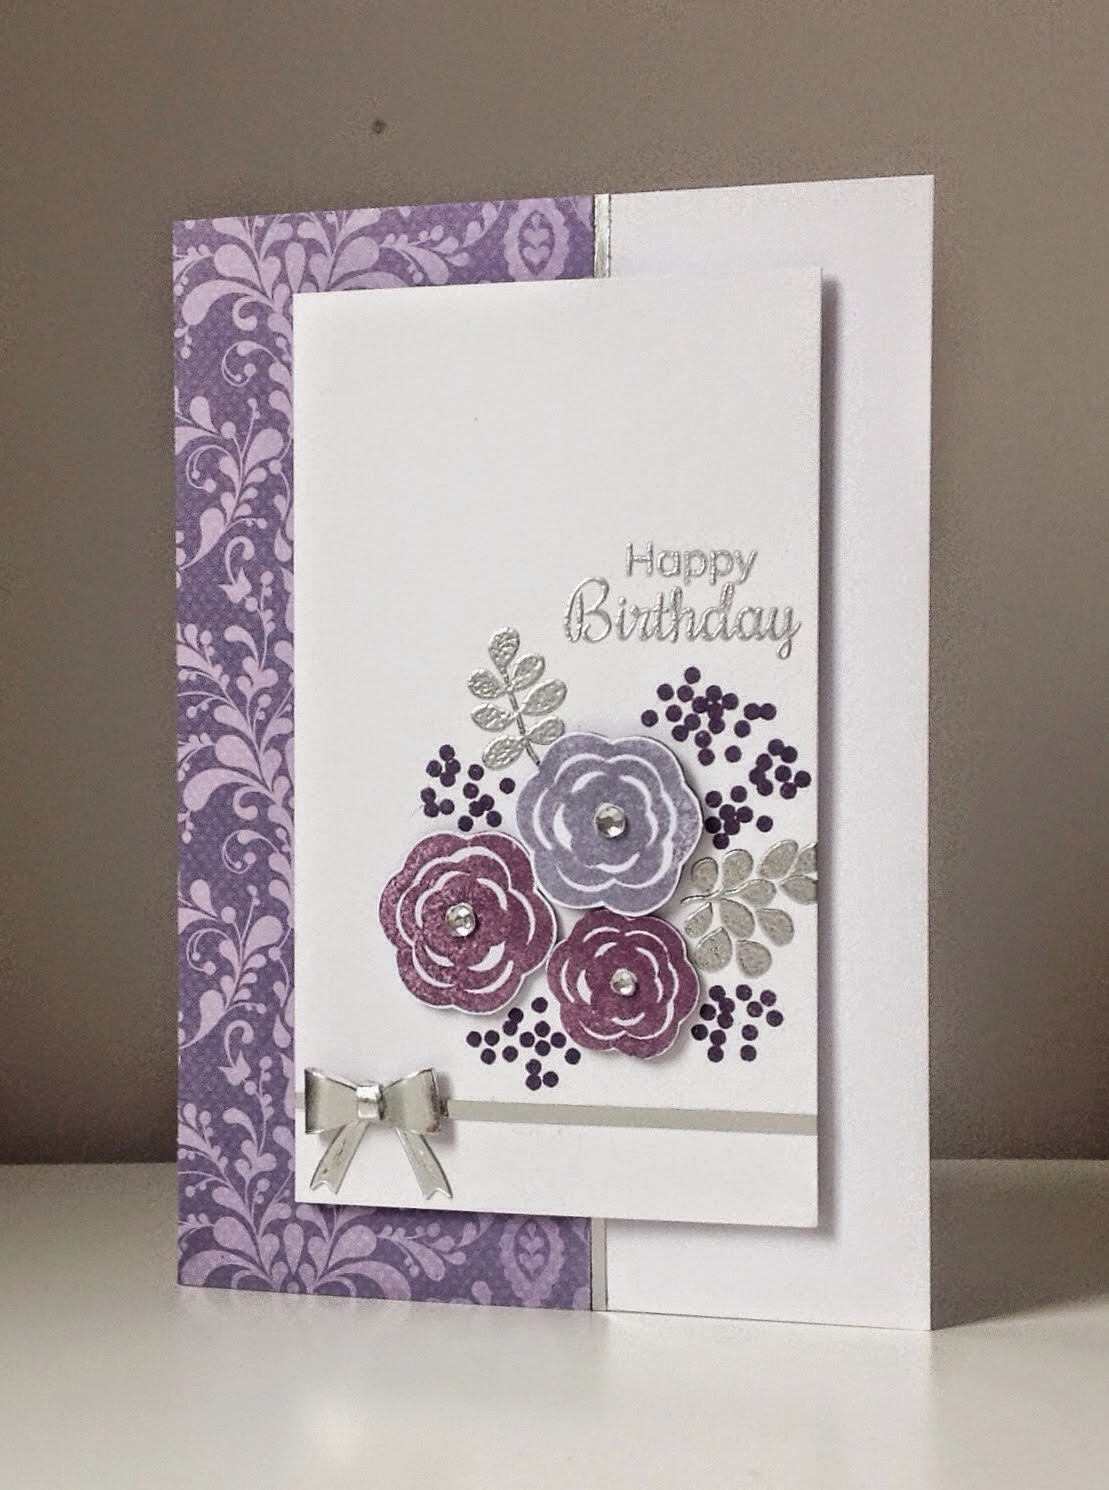 http://mylittlecardblog.blogspot.co.uk/2014/05/purple-flowers.html